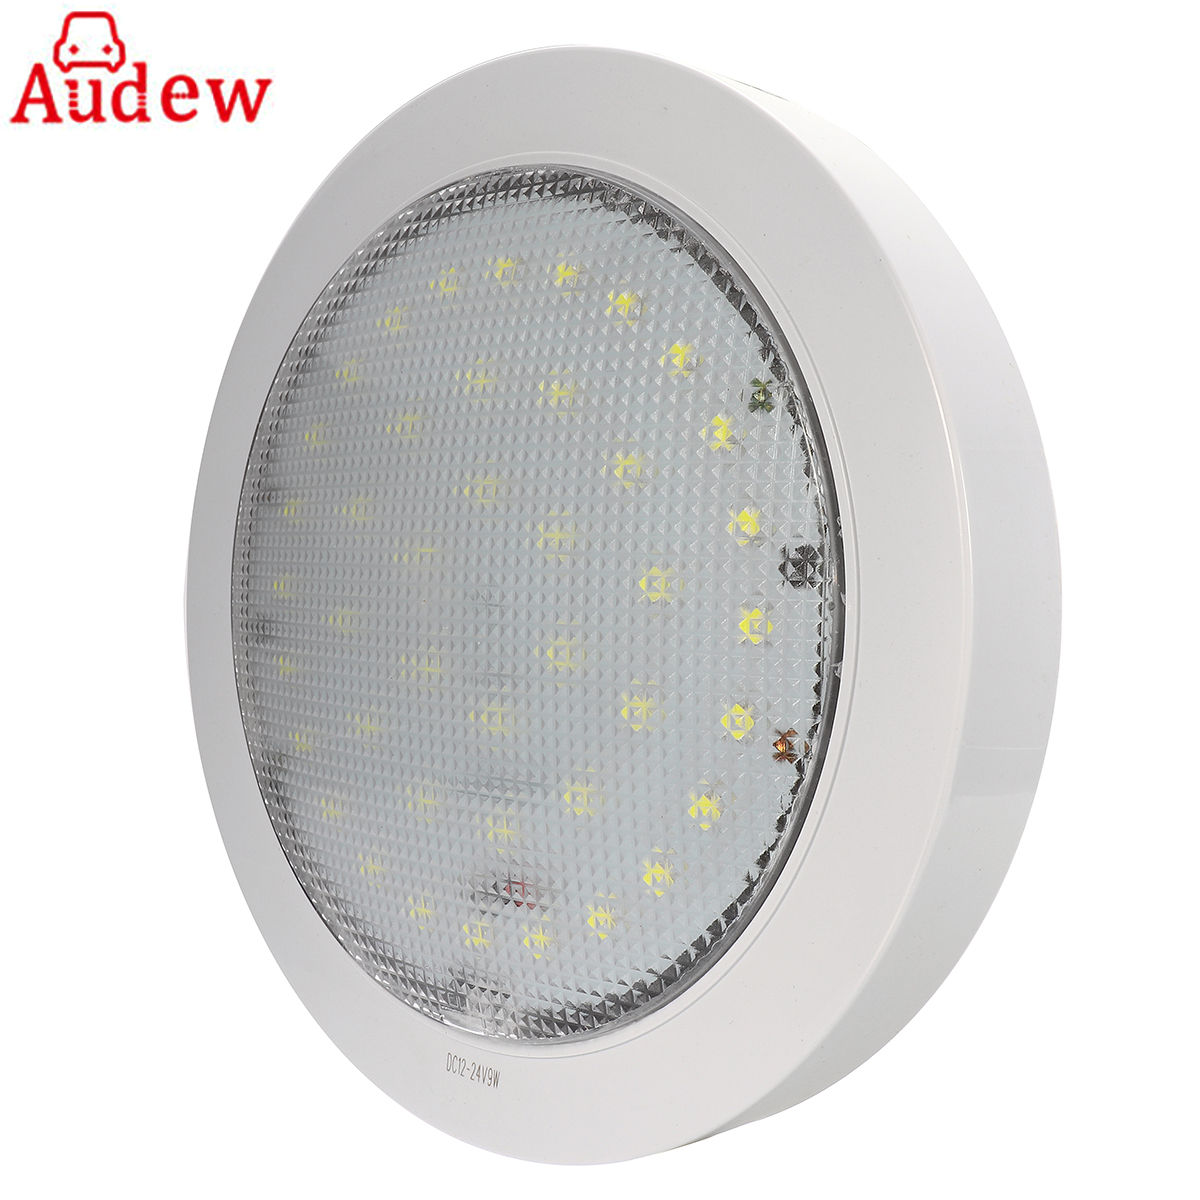 42LED 5050SMD Warm White Car Roof Ceiling Interior Reading Dome Light For Camper Car RV Boat Trailer DC 12V -24V